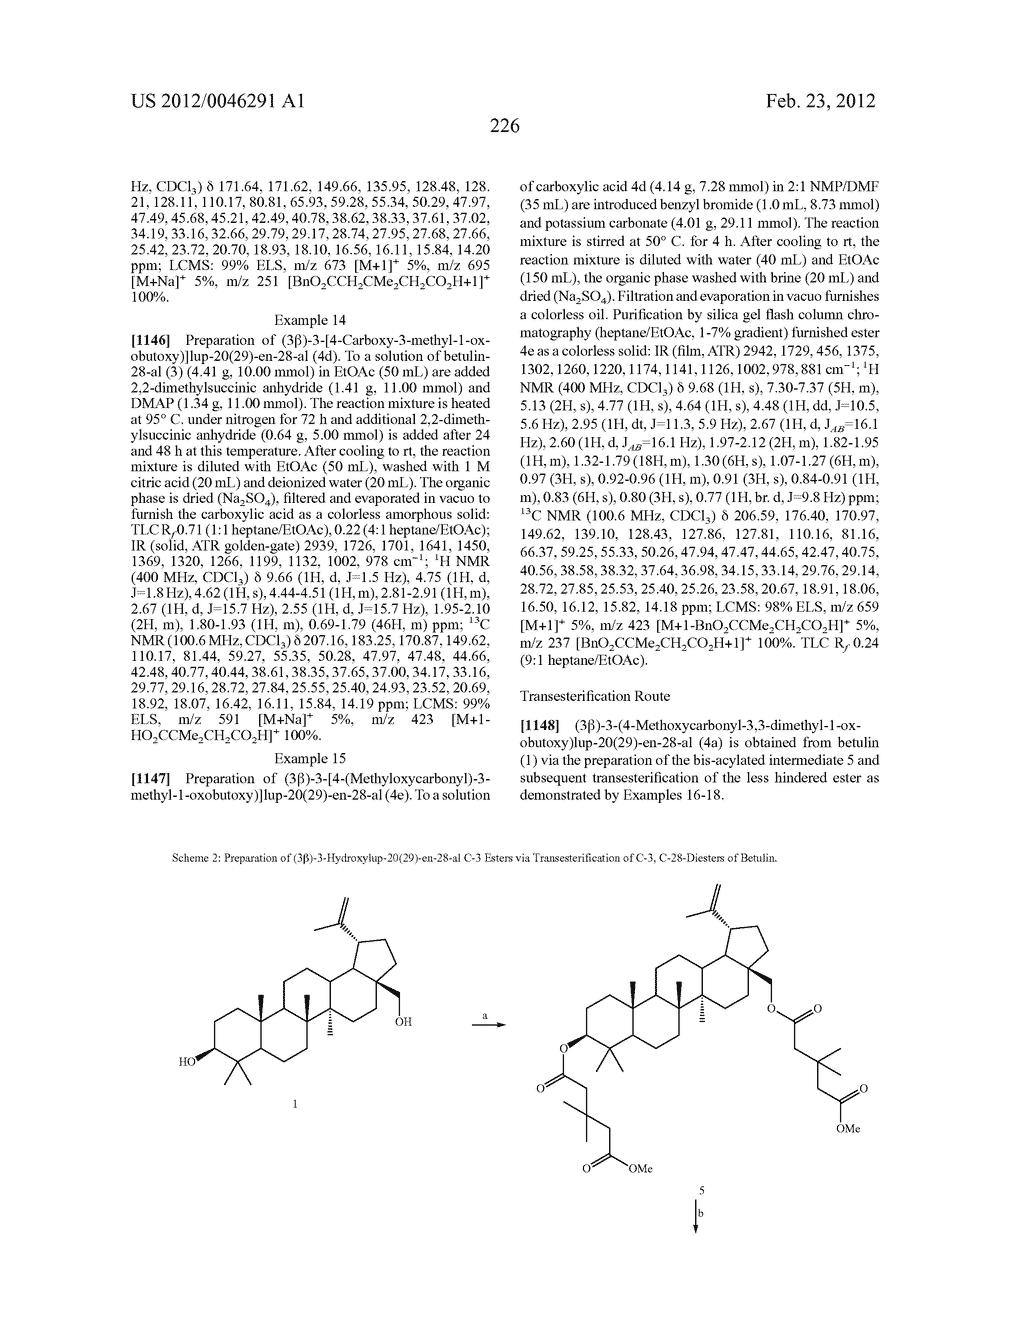 Extended Triterpene Derivatives - diagram, schematic, and image 226